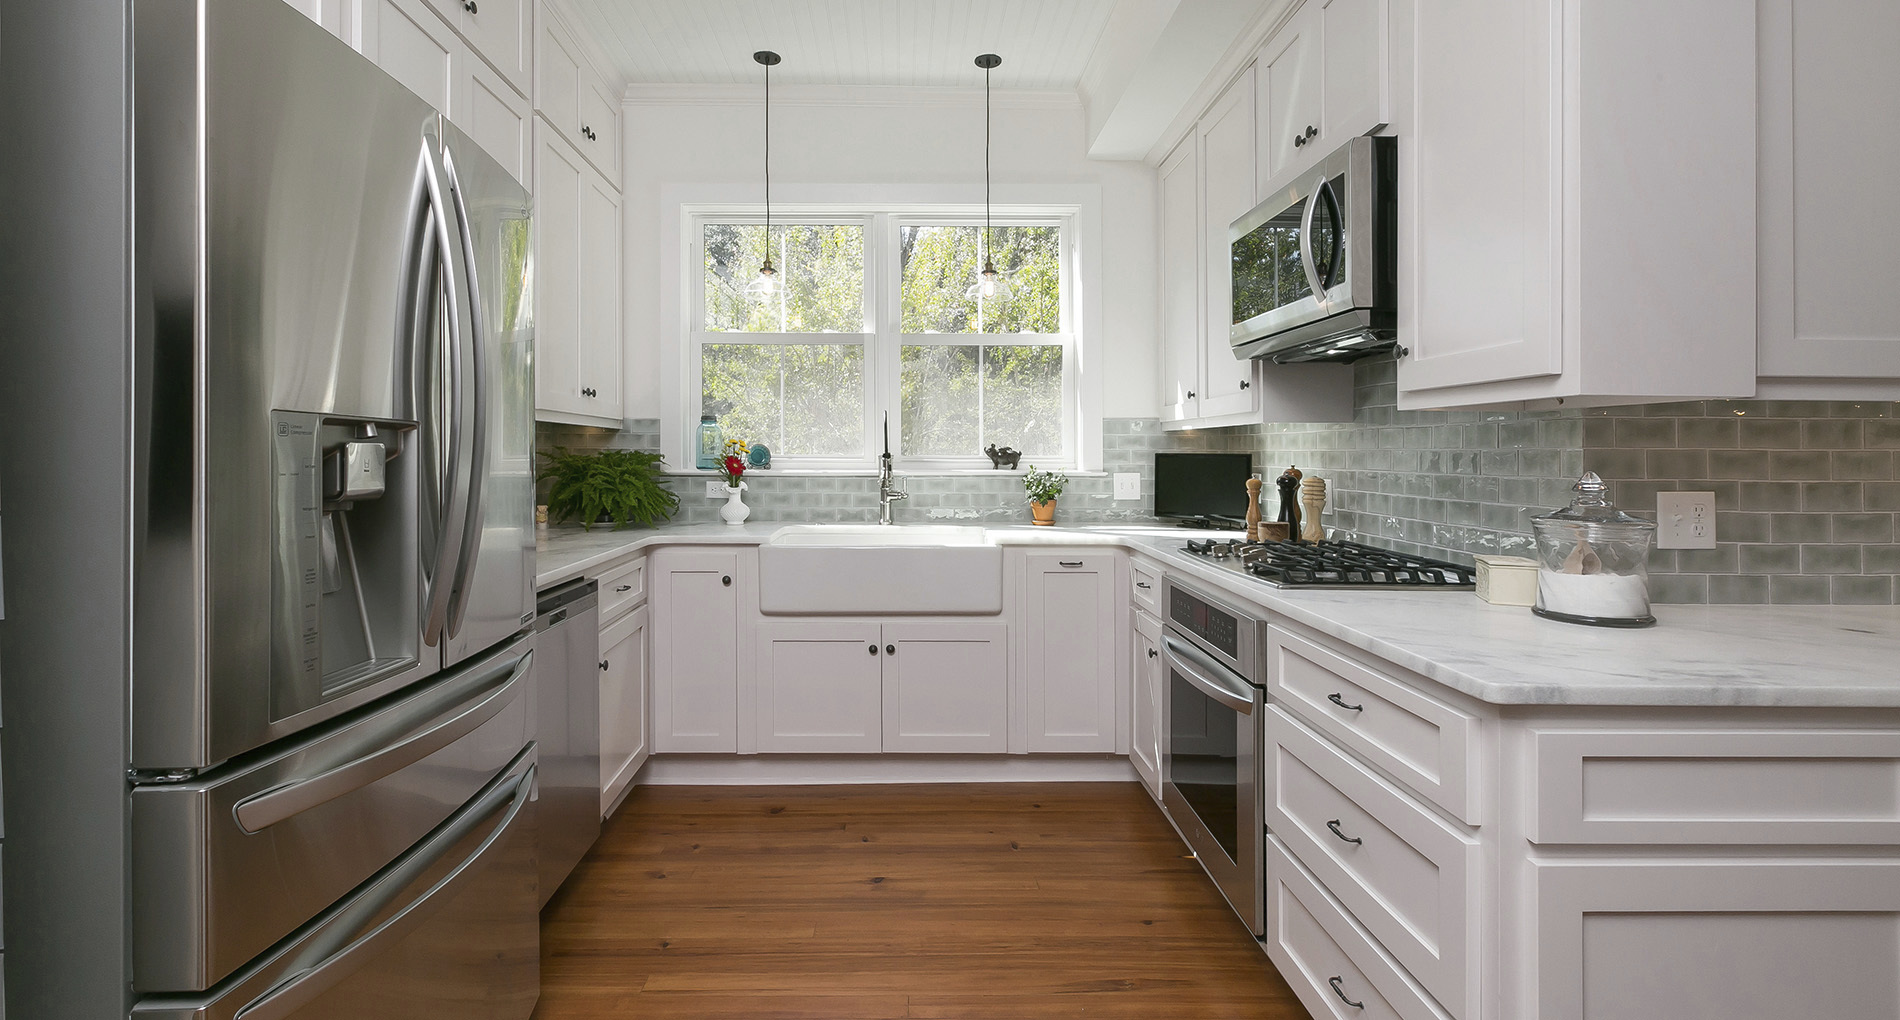 Custom kitchen with trough sink, mint backsplash and white cabinets